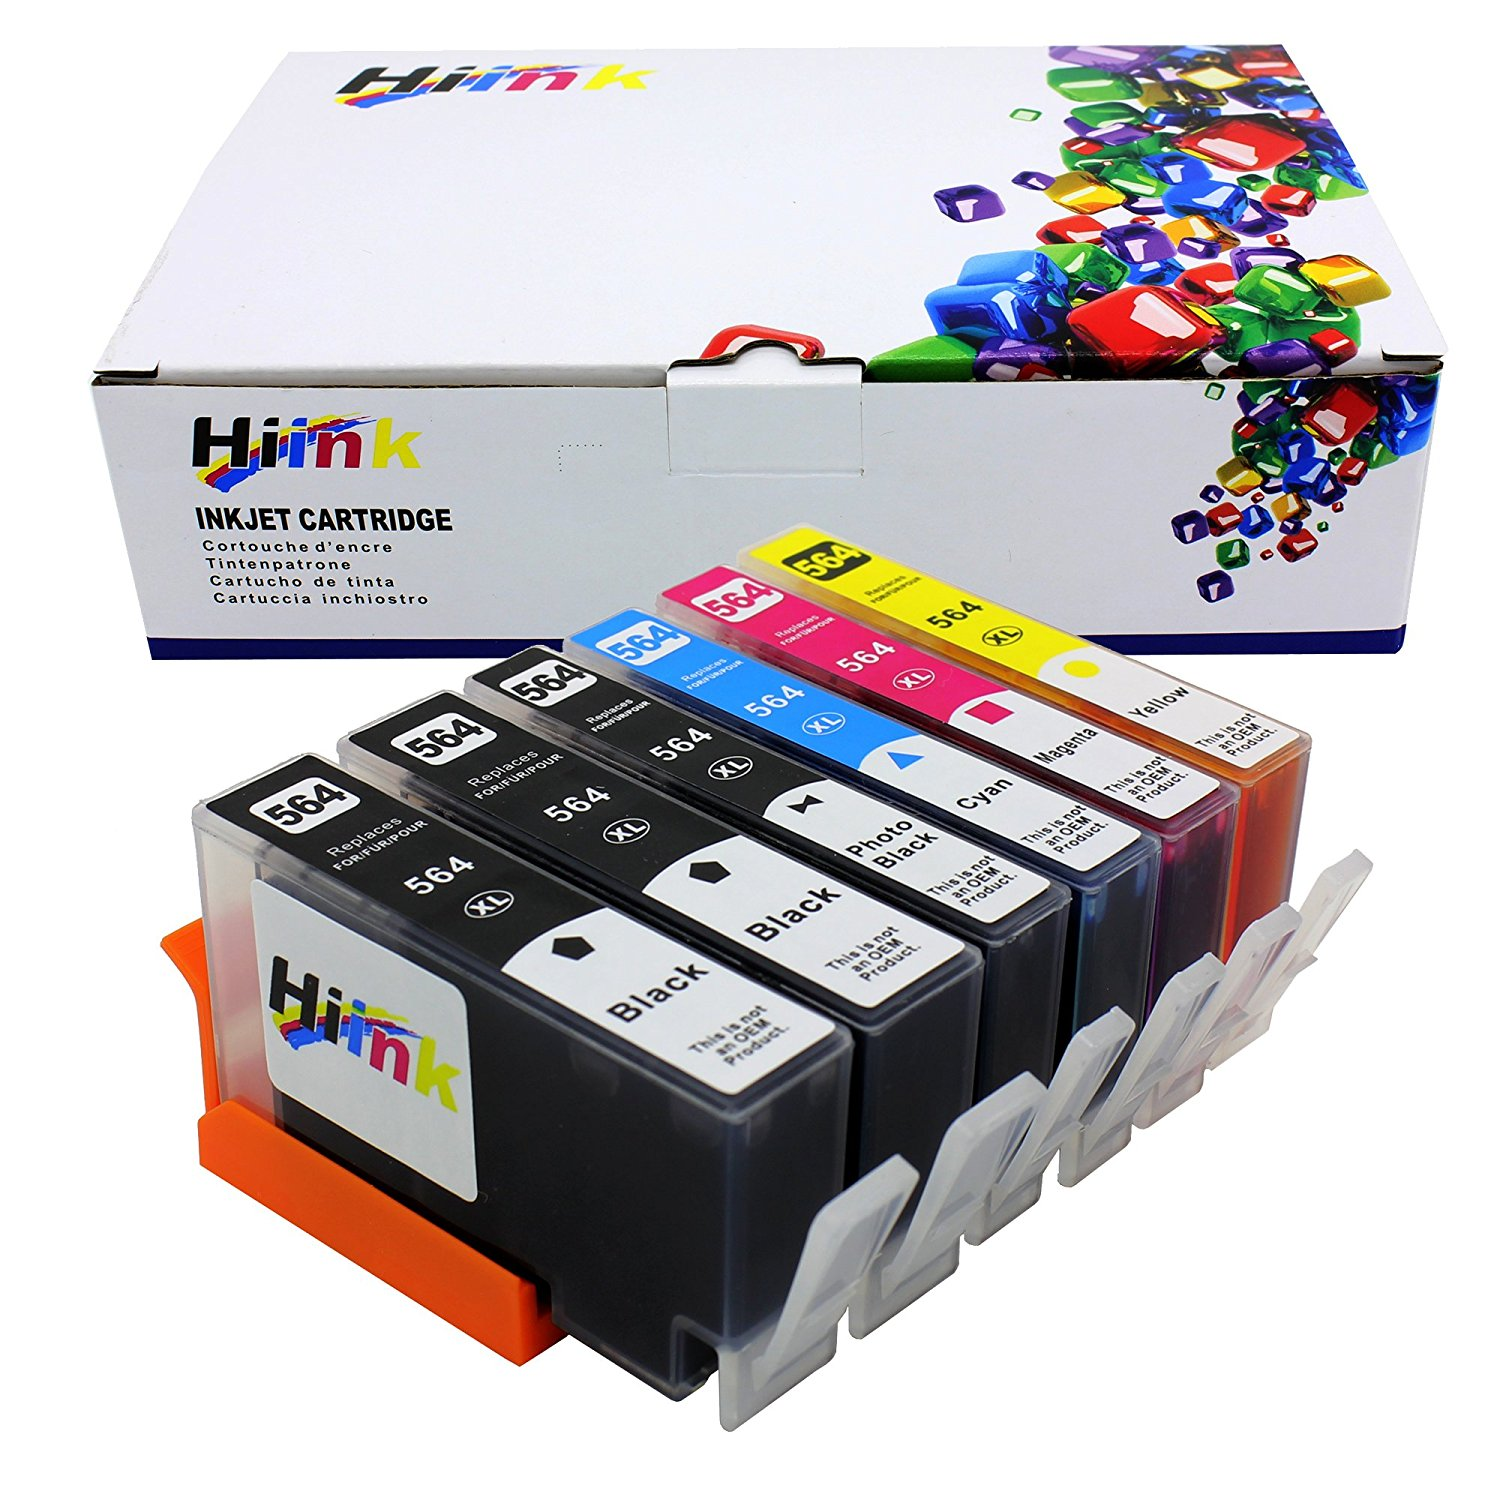 HI INK 6 Pack 564xl ink cartirdge Replacement For HP 564XL ink used in HP Photosmart 5520 6520 7520 5510 6510 7510 7525 B8550 C6380 D7560 Premium C309A C410 Officejet 4620 Deskjet 3520